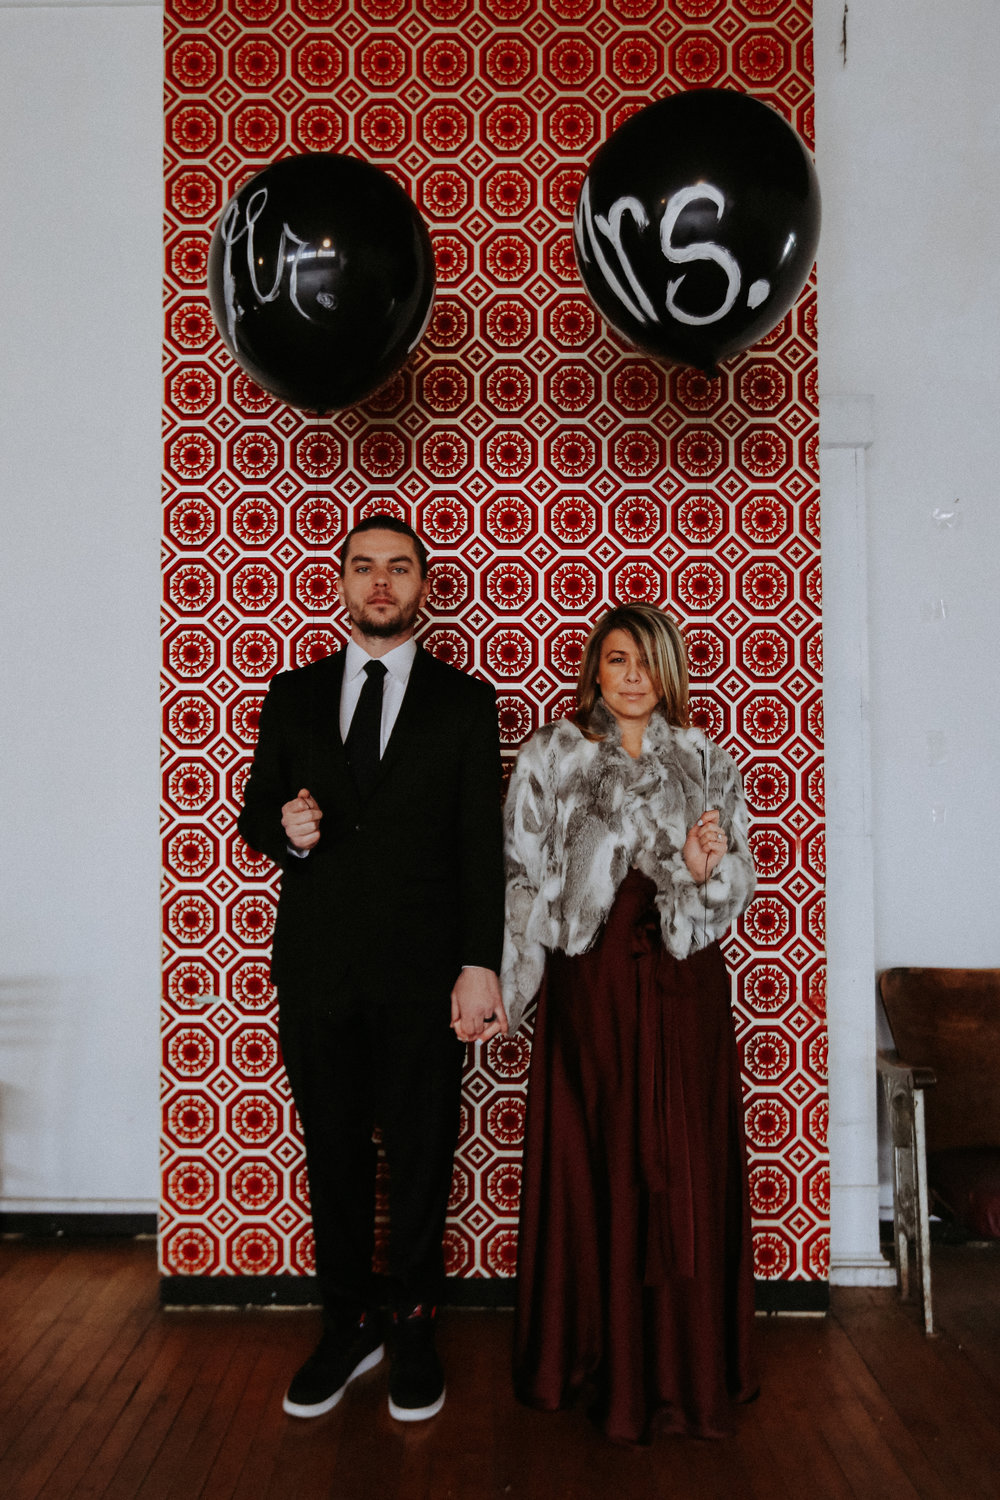 Mr and Mrs Balloon, Friday the 13th Intimate Wedding | Brandy Swartz Photography